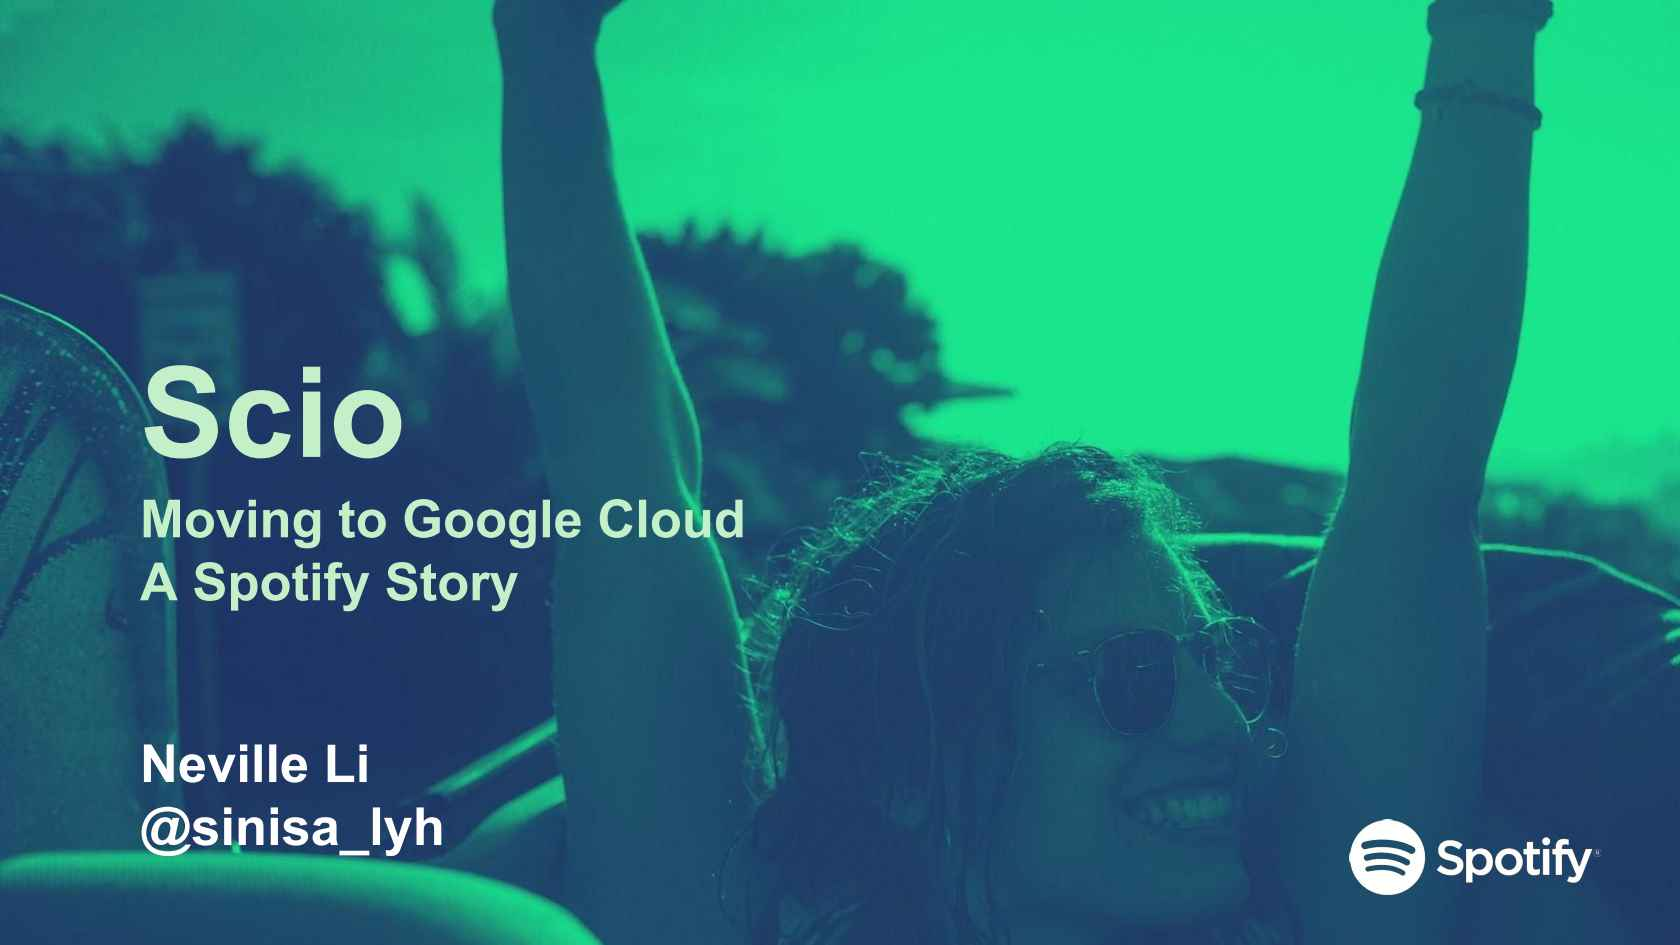 Scio: Moving Big Data to Google Cloud, a Spotify Story